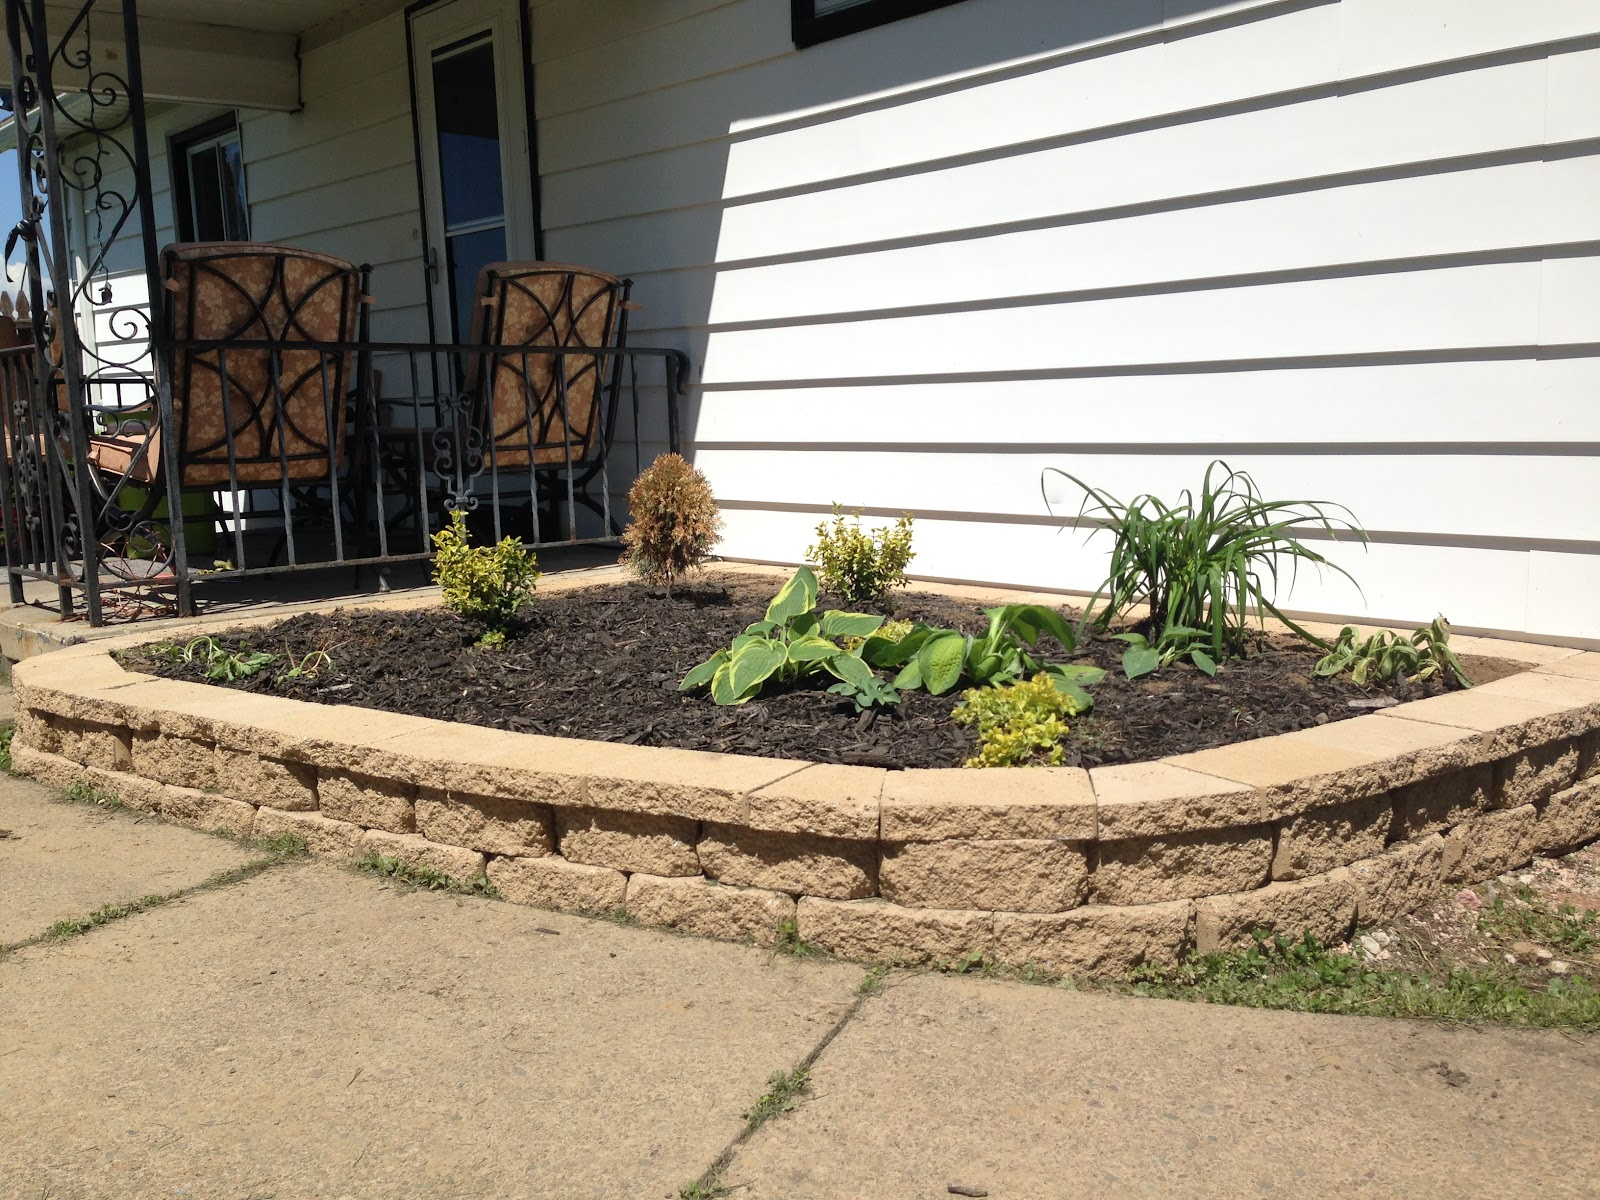 Here's another raised garden bed made from the same stone in the front (slightly different color)